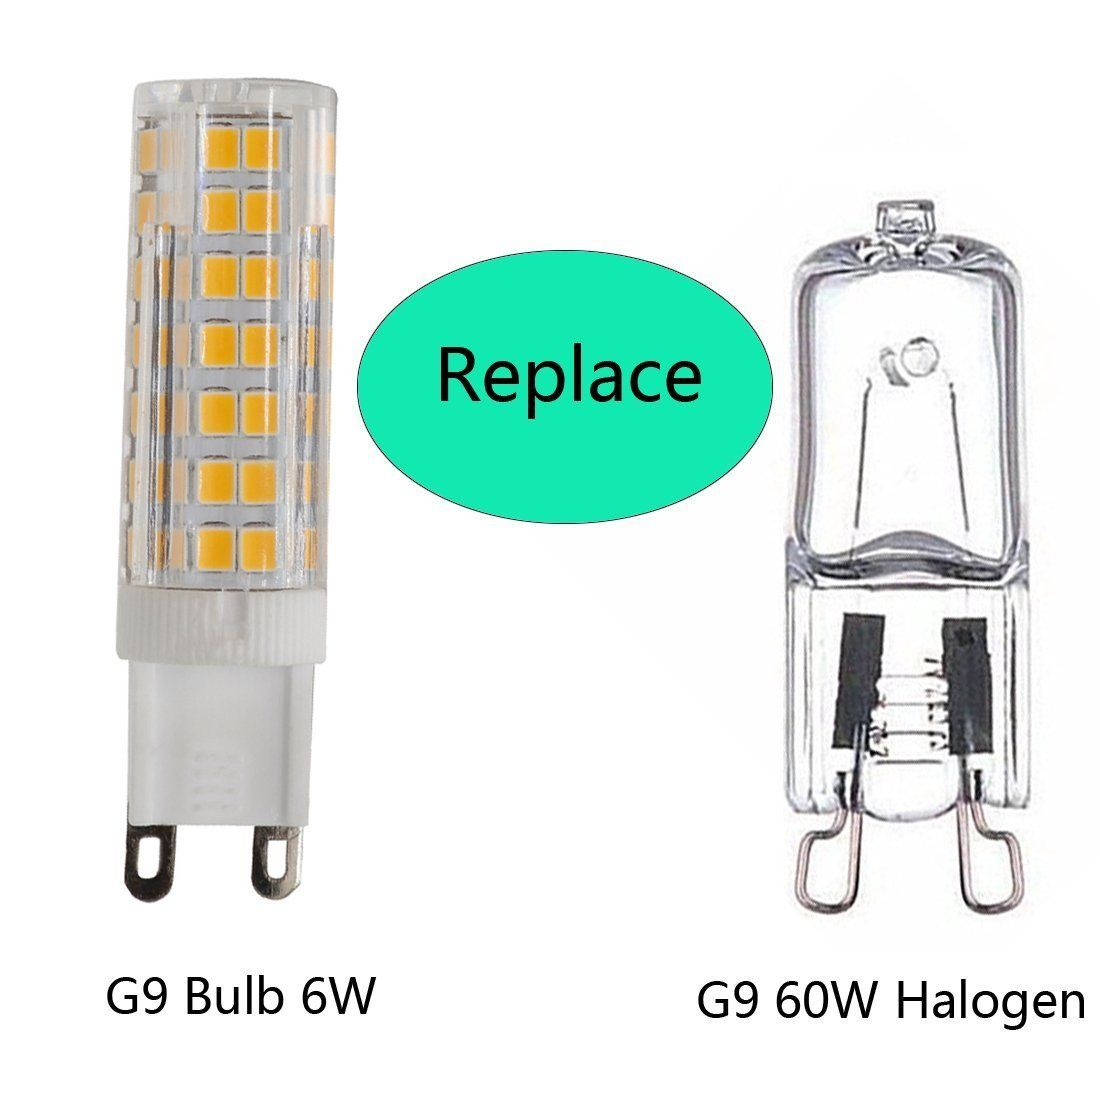 G9 Led Light Bulb 75w 85w 100w Halogen Bulbs Equivalent 840lm G9 Binpins Base 110v 120v 130v Input Led Bulbs Replacement War Led Light Bulb Led Bulb Light Bulb